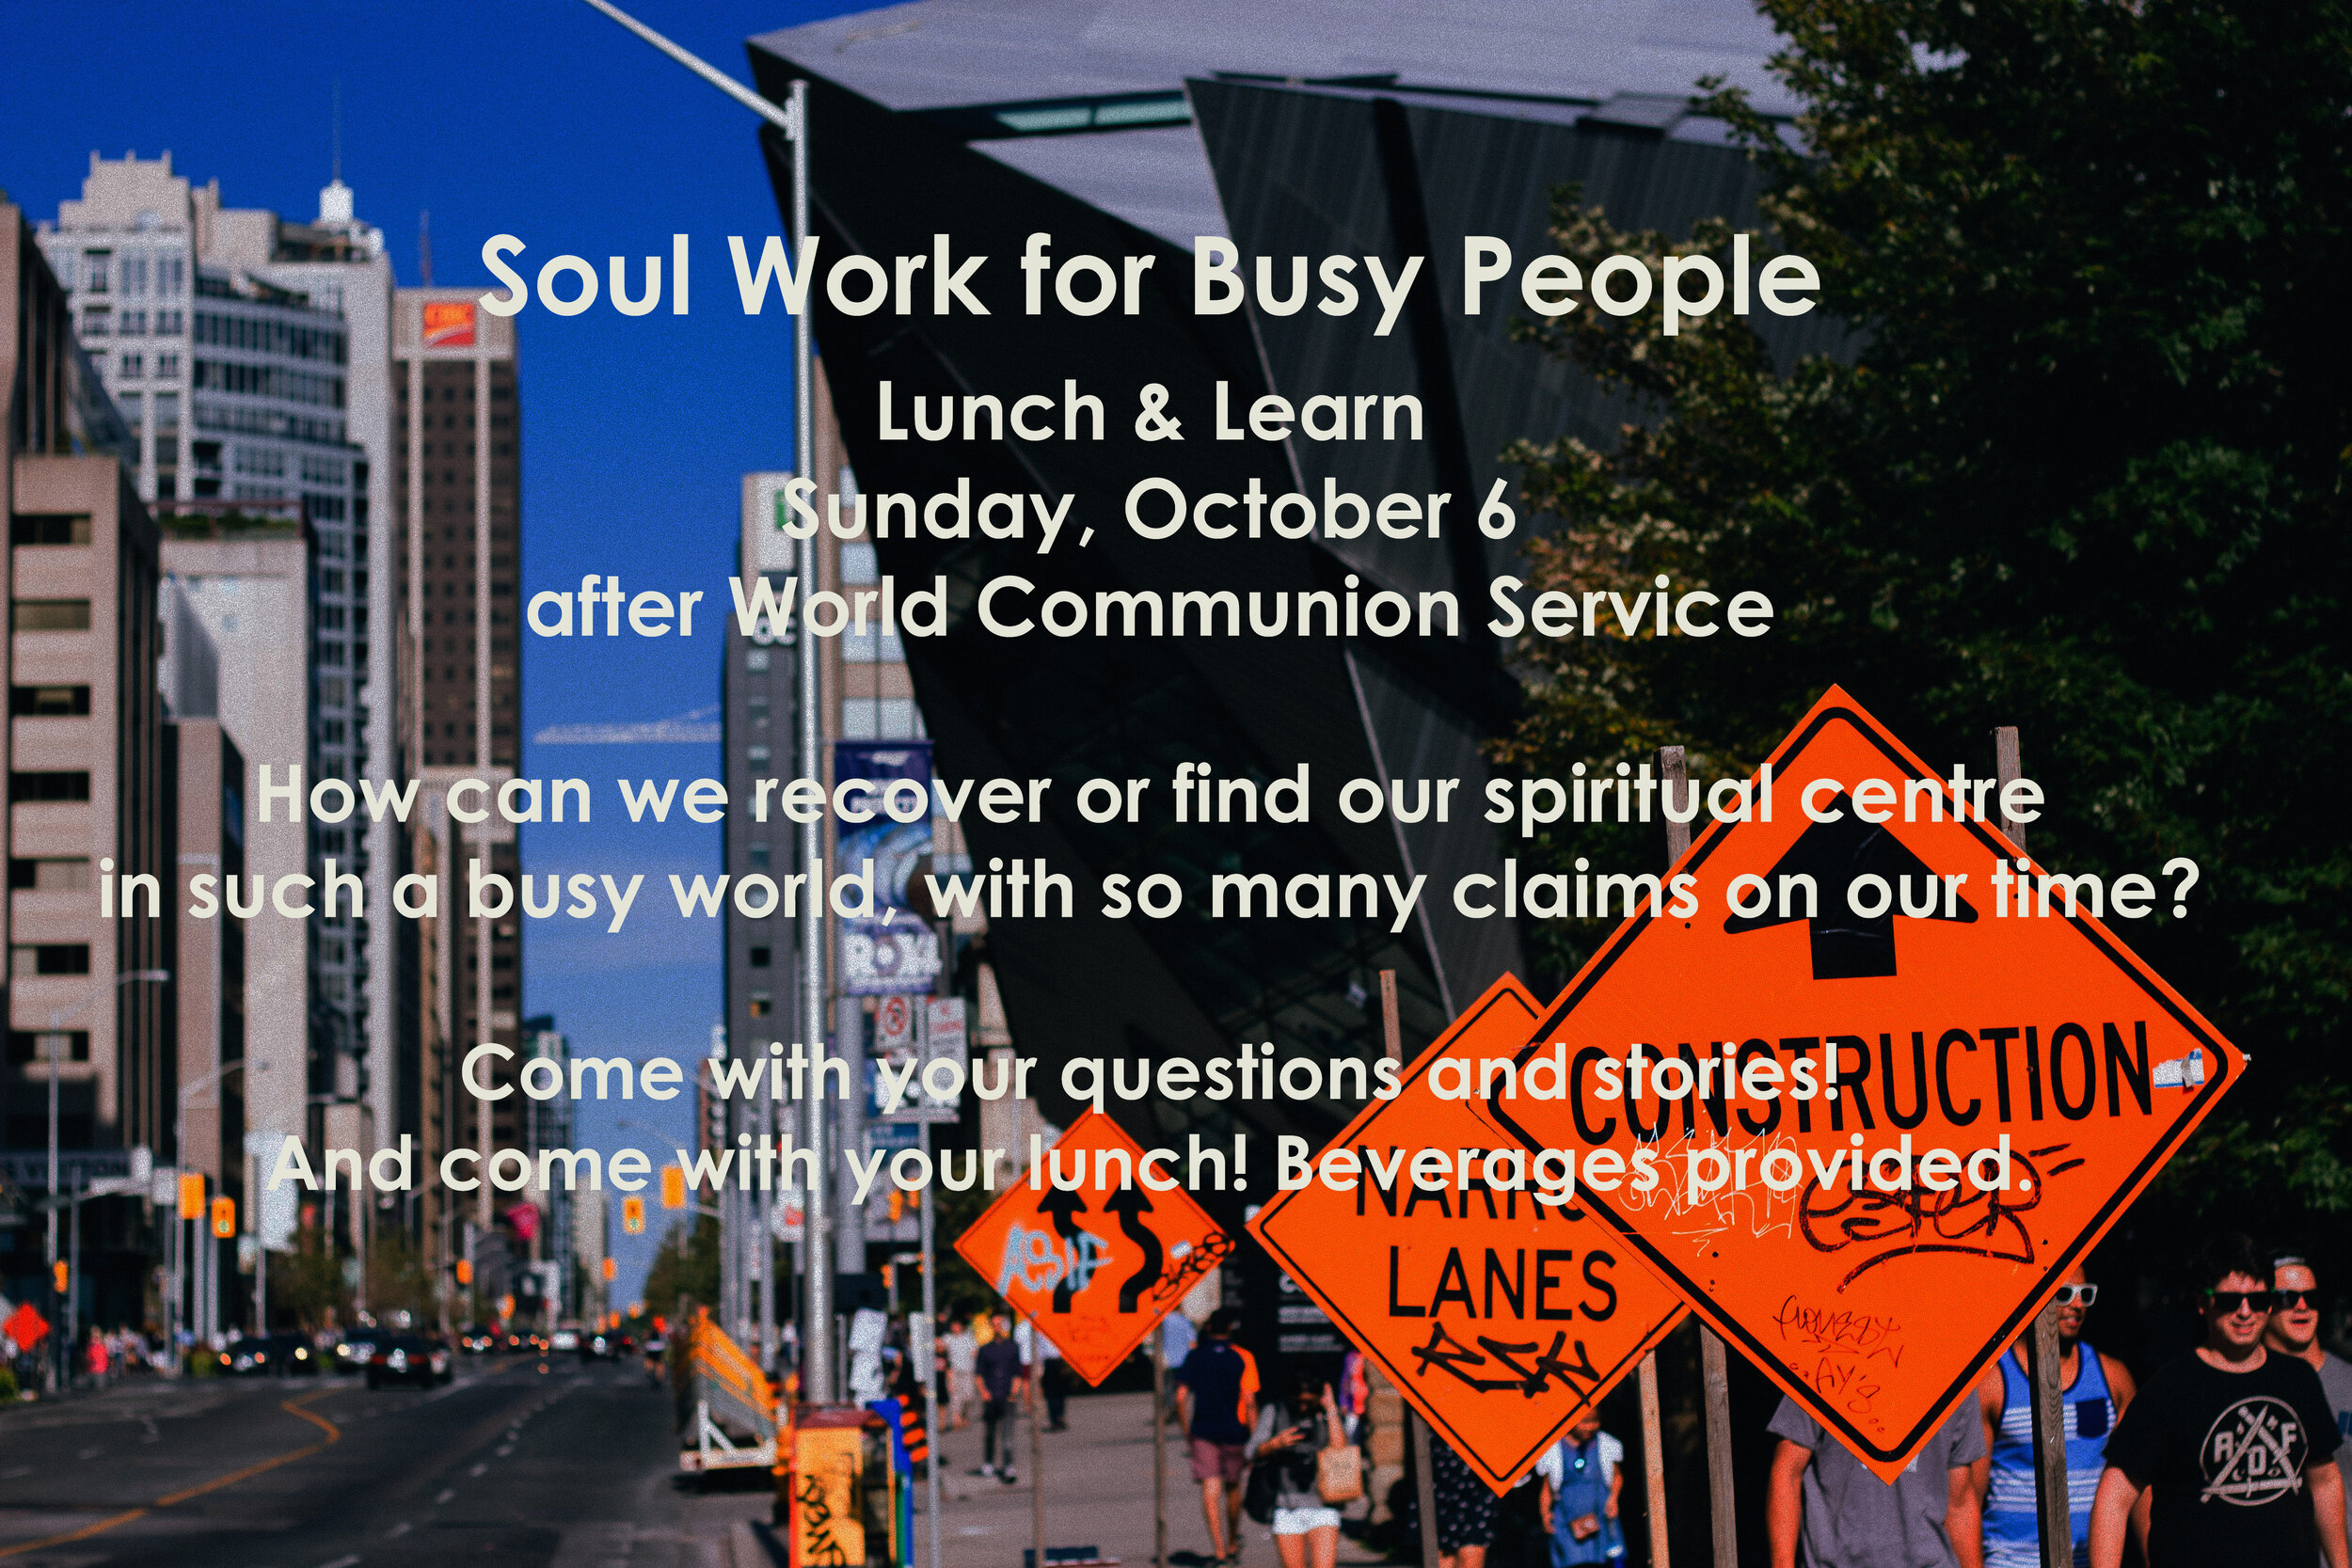 soul work for busy people.jpg